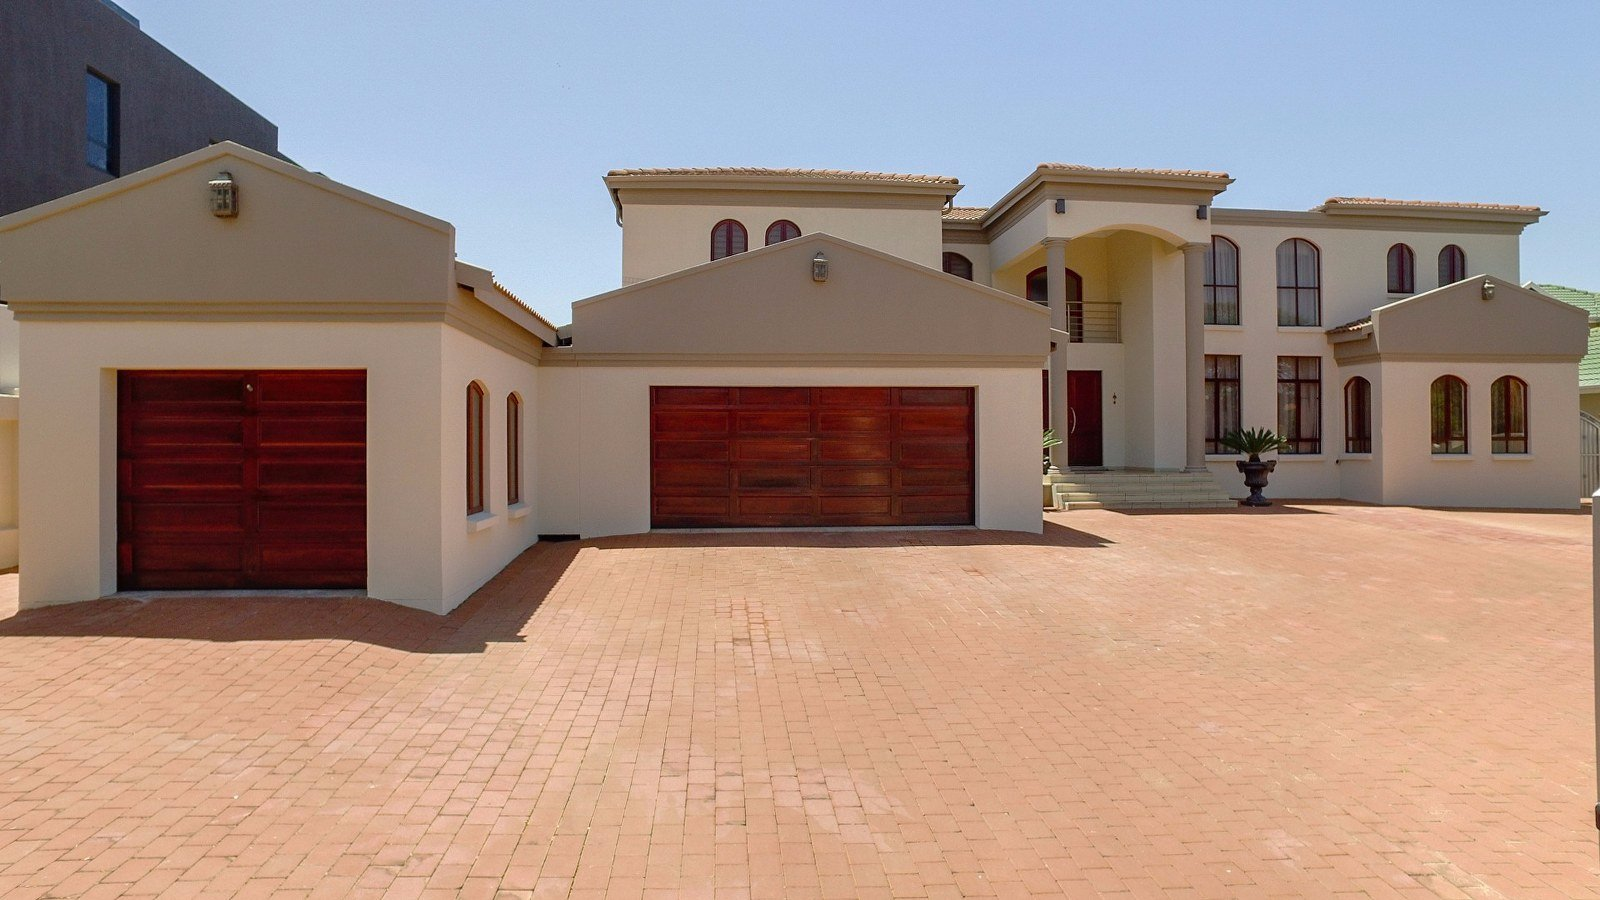 Alberton, Meyersdal Eco Estate Property  | Houses For Sale Meyersdal Eco Estate, Meyersdal Eco Estate, House 5 bedrooms property for sale Price:9,999,000